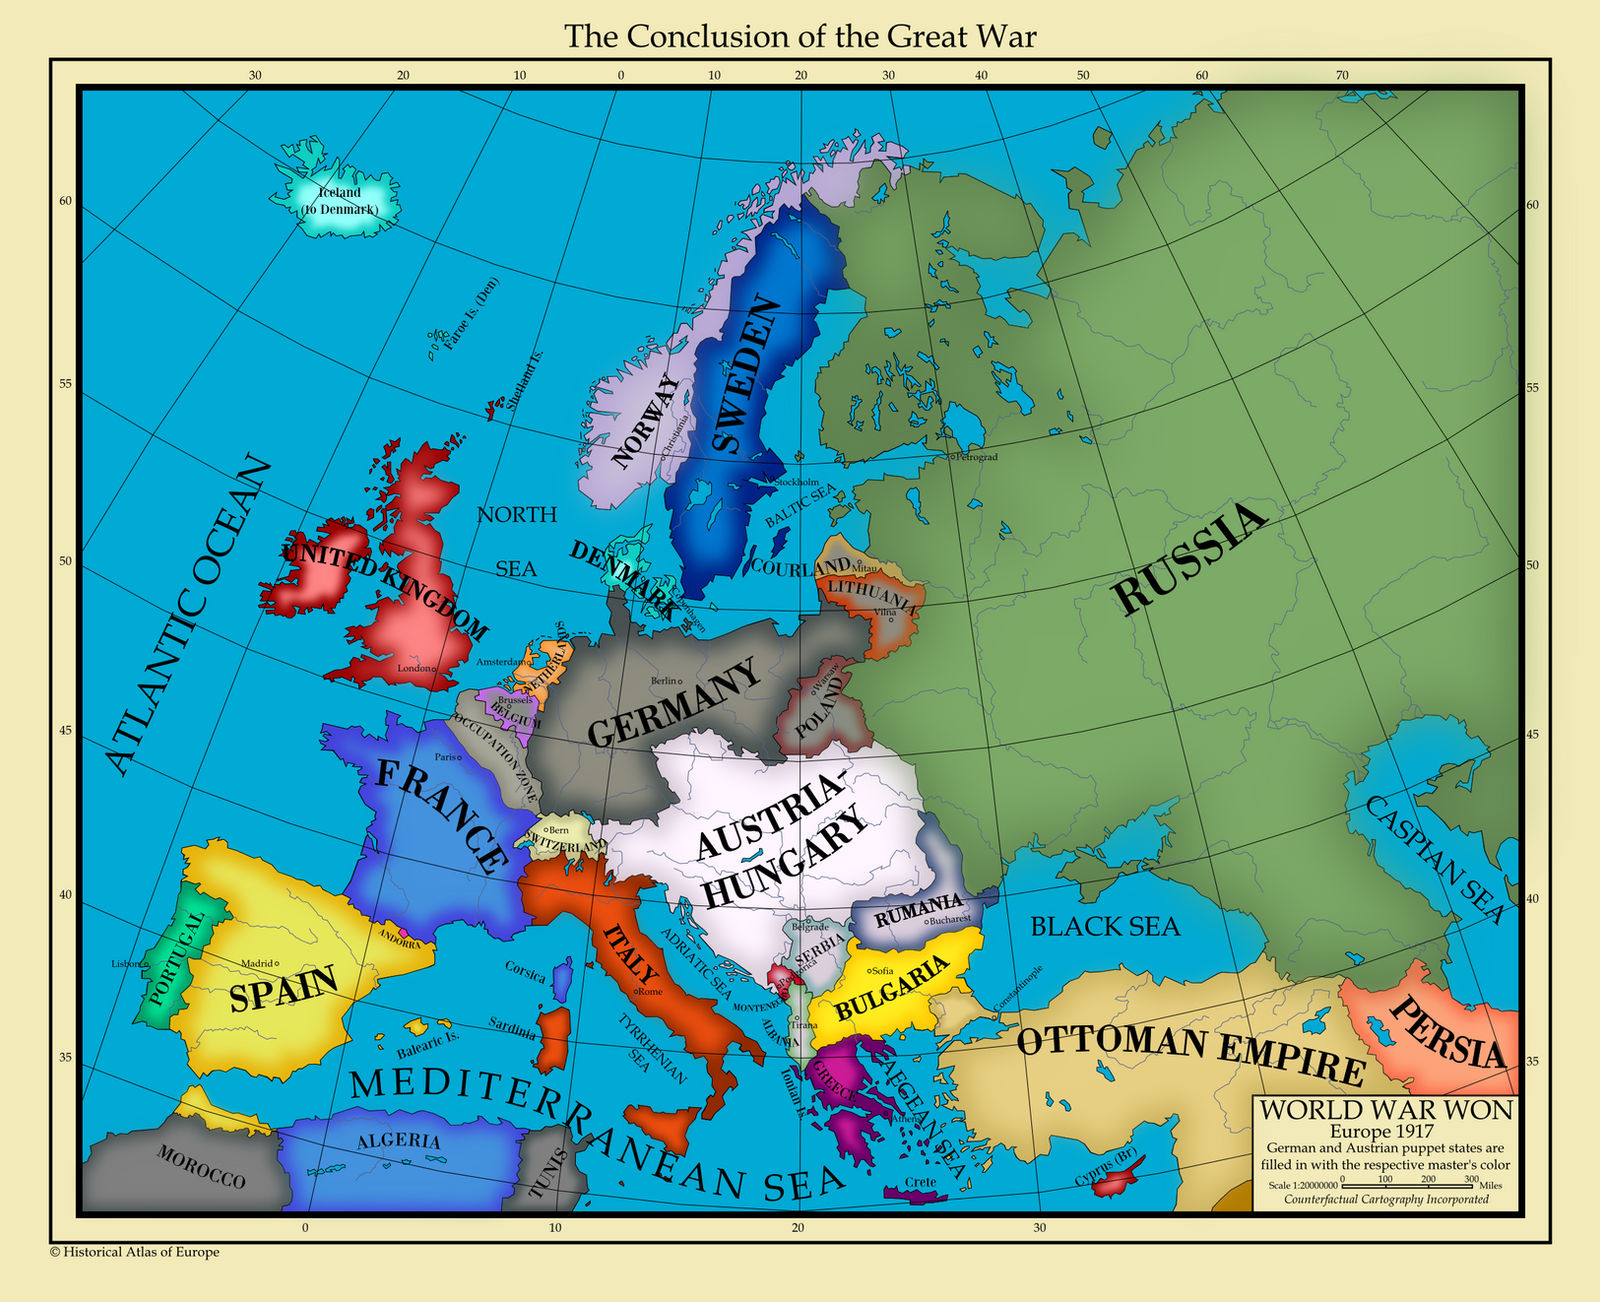 map of europe 1917 Europe 1917 by AHImperator on DeviantArt